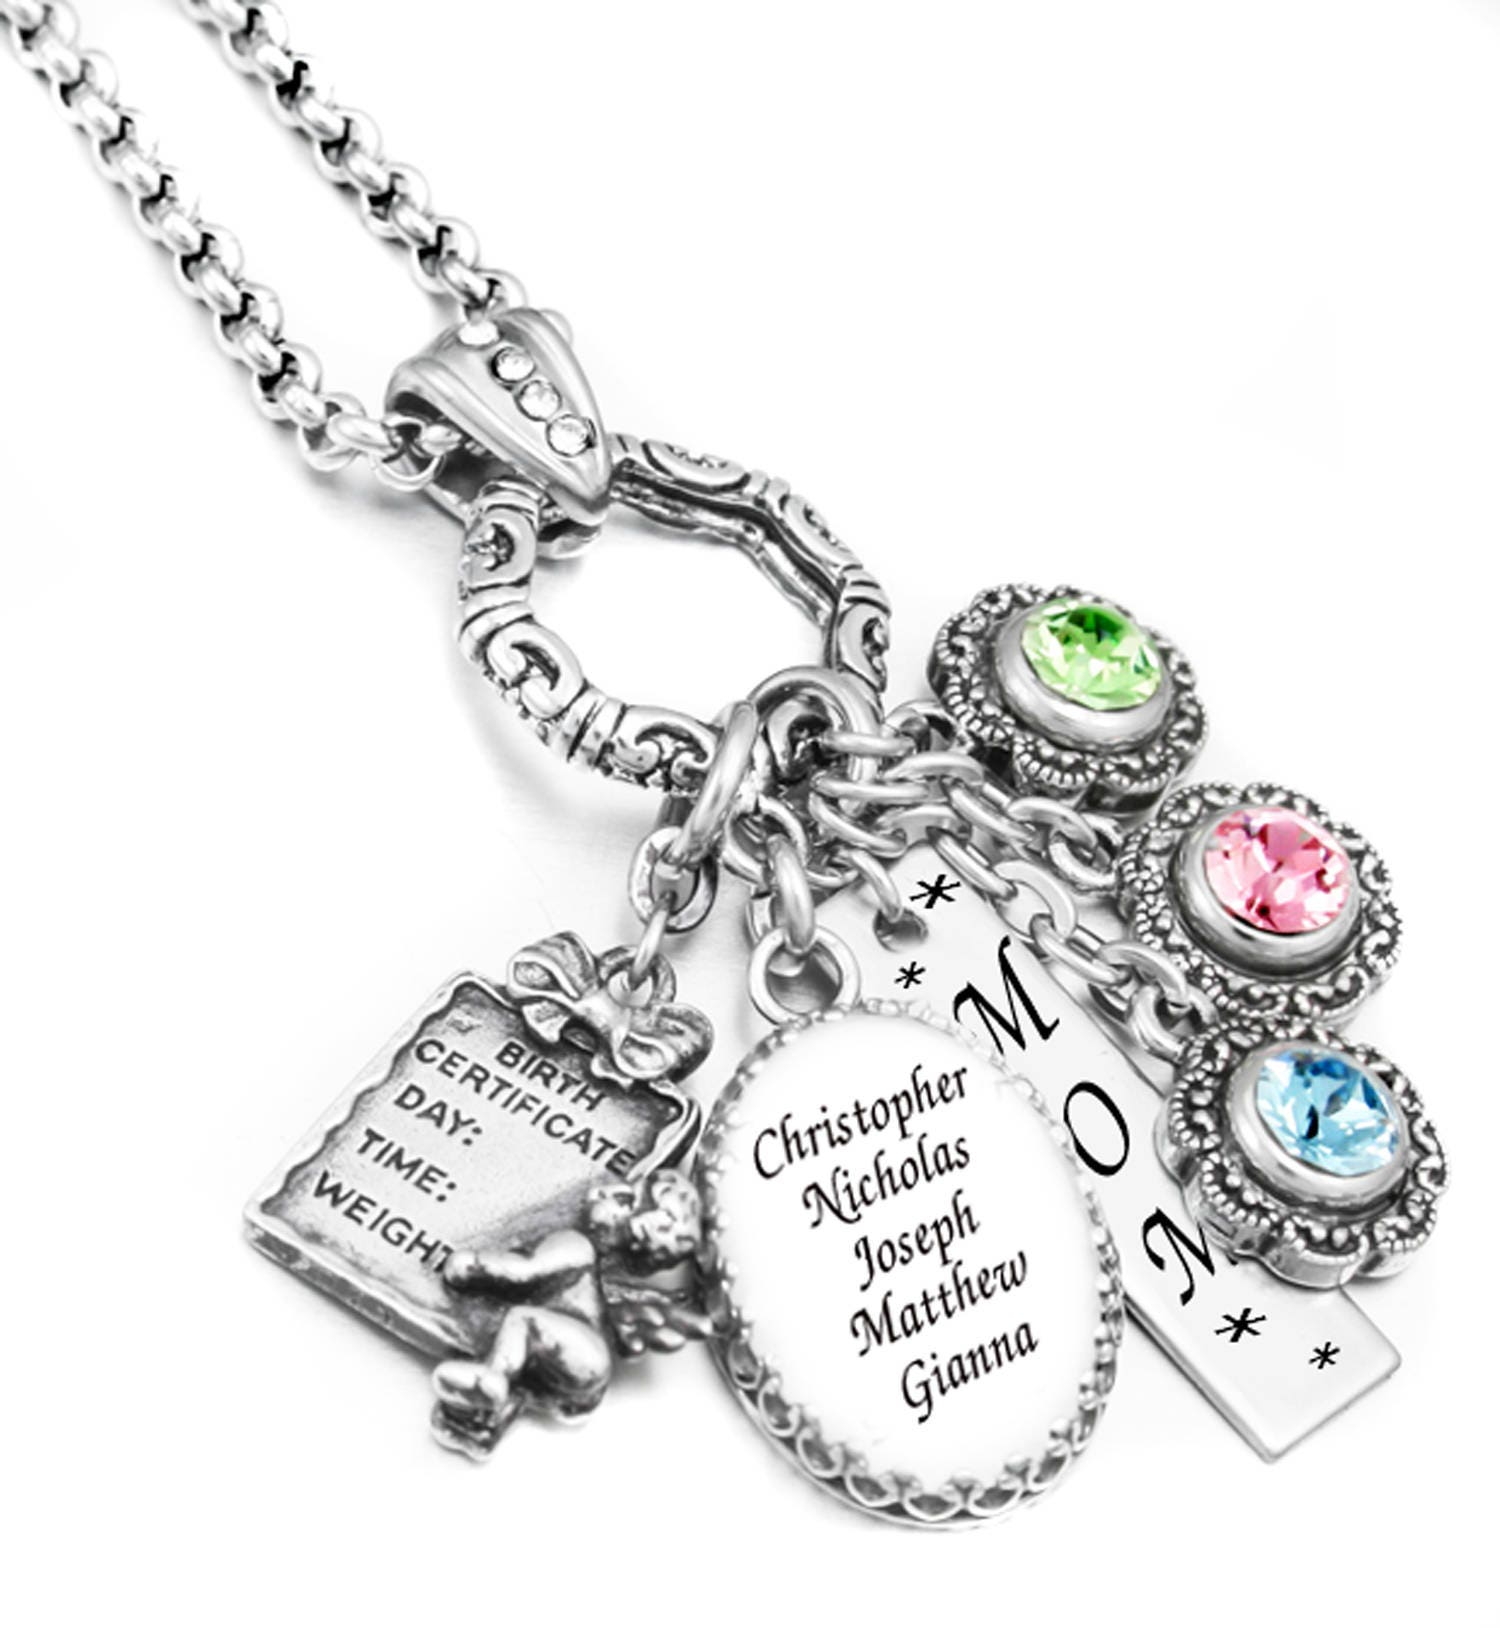 personalized mothers necklace birthstone necklace family. Black Bedroom Furniture Sets. Home Design Ideas